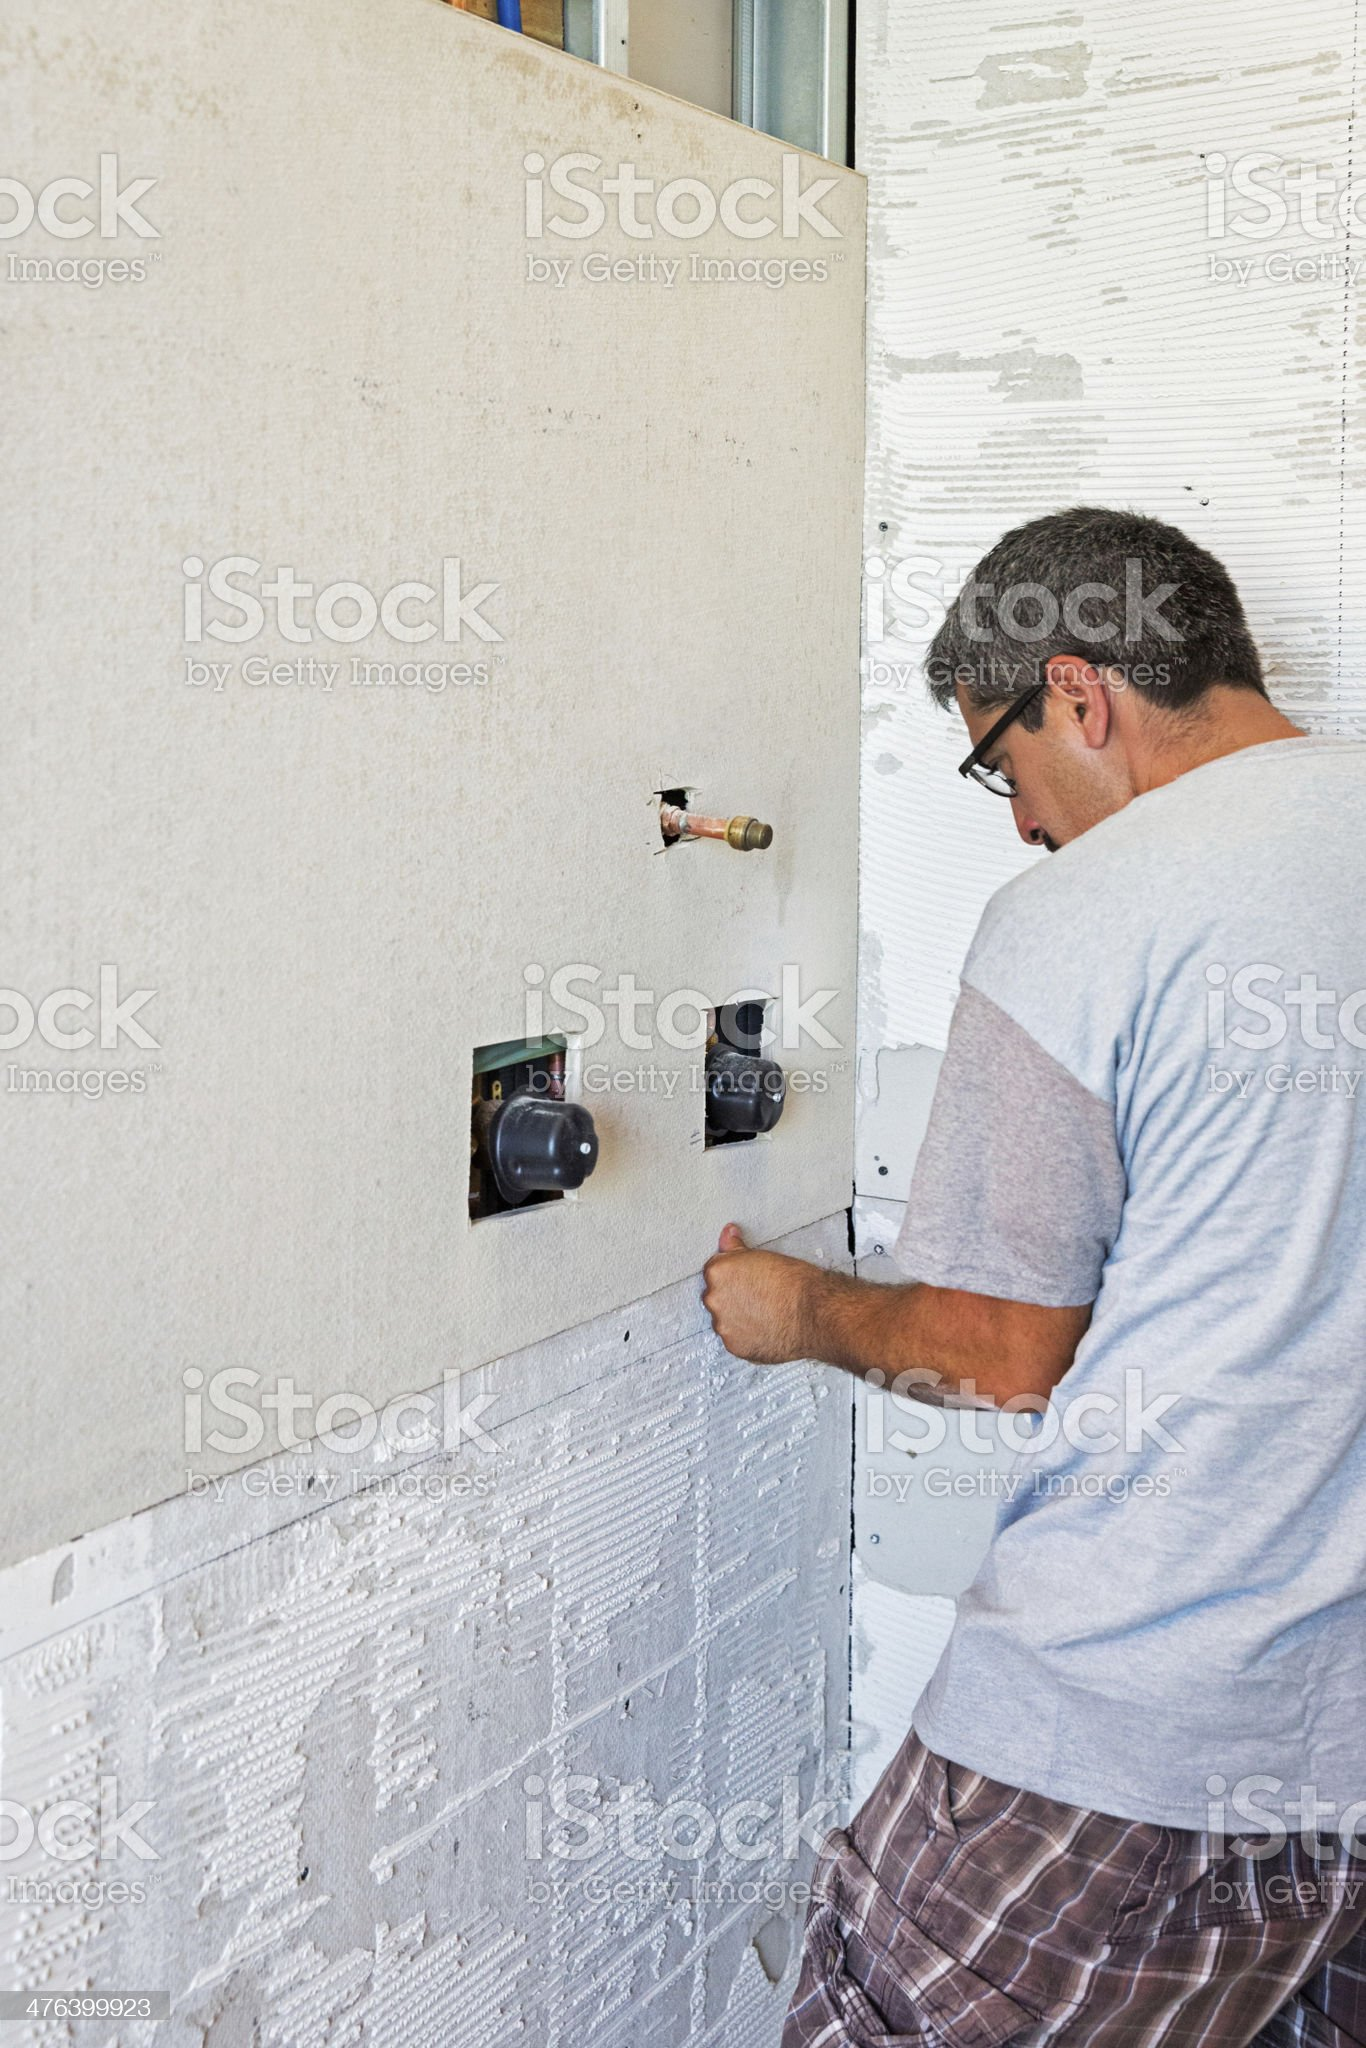 Workman constructing a bathroom shower stall royalty-free stock photo